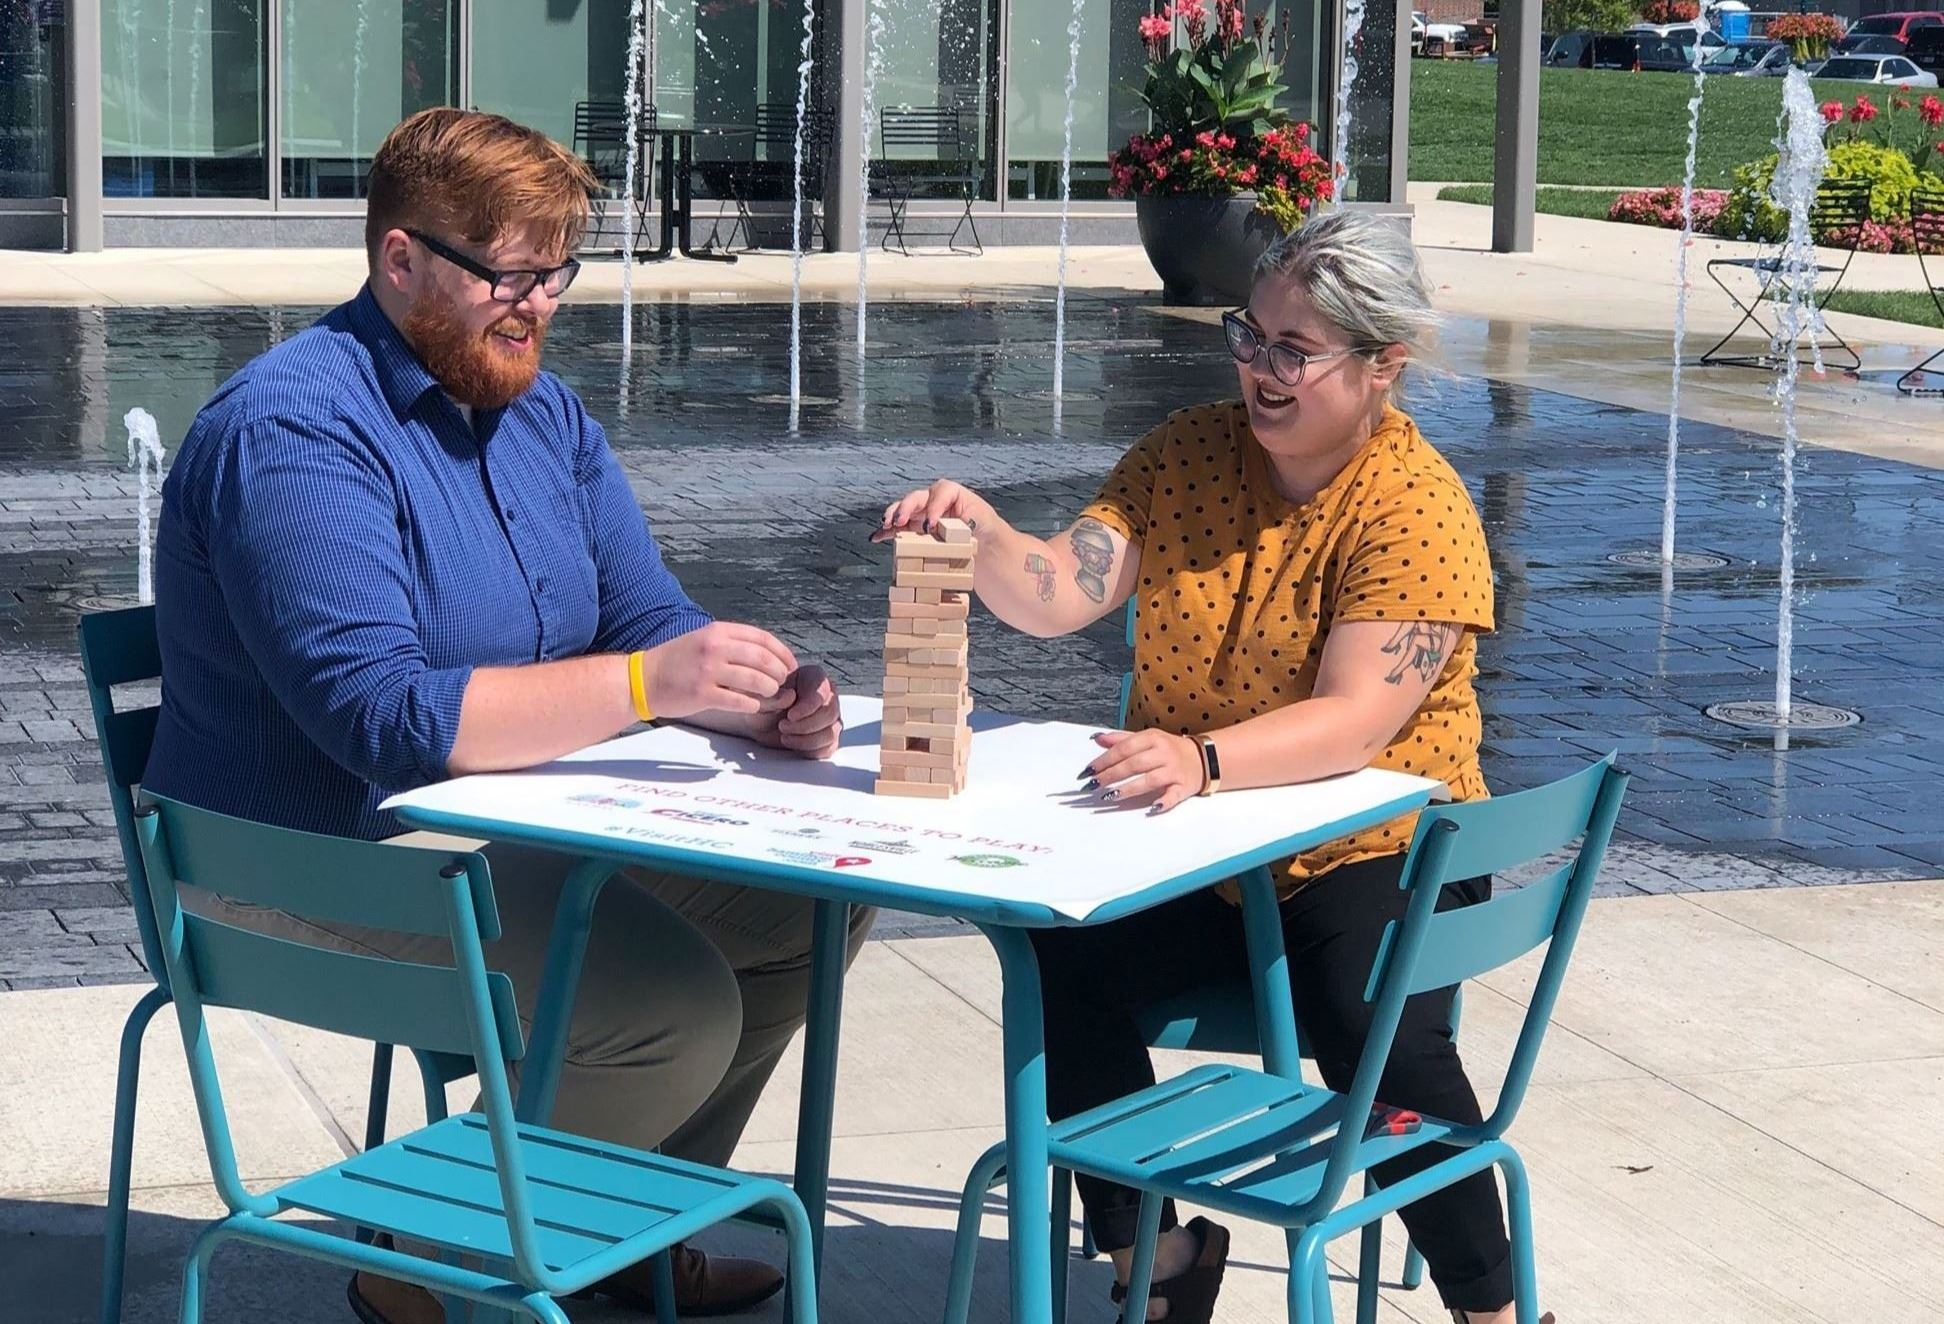 Ross Hilleary & Kelli Jenkins play Jenga at the Turquoise Table in downtown Fishers